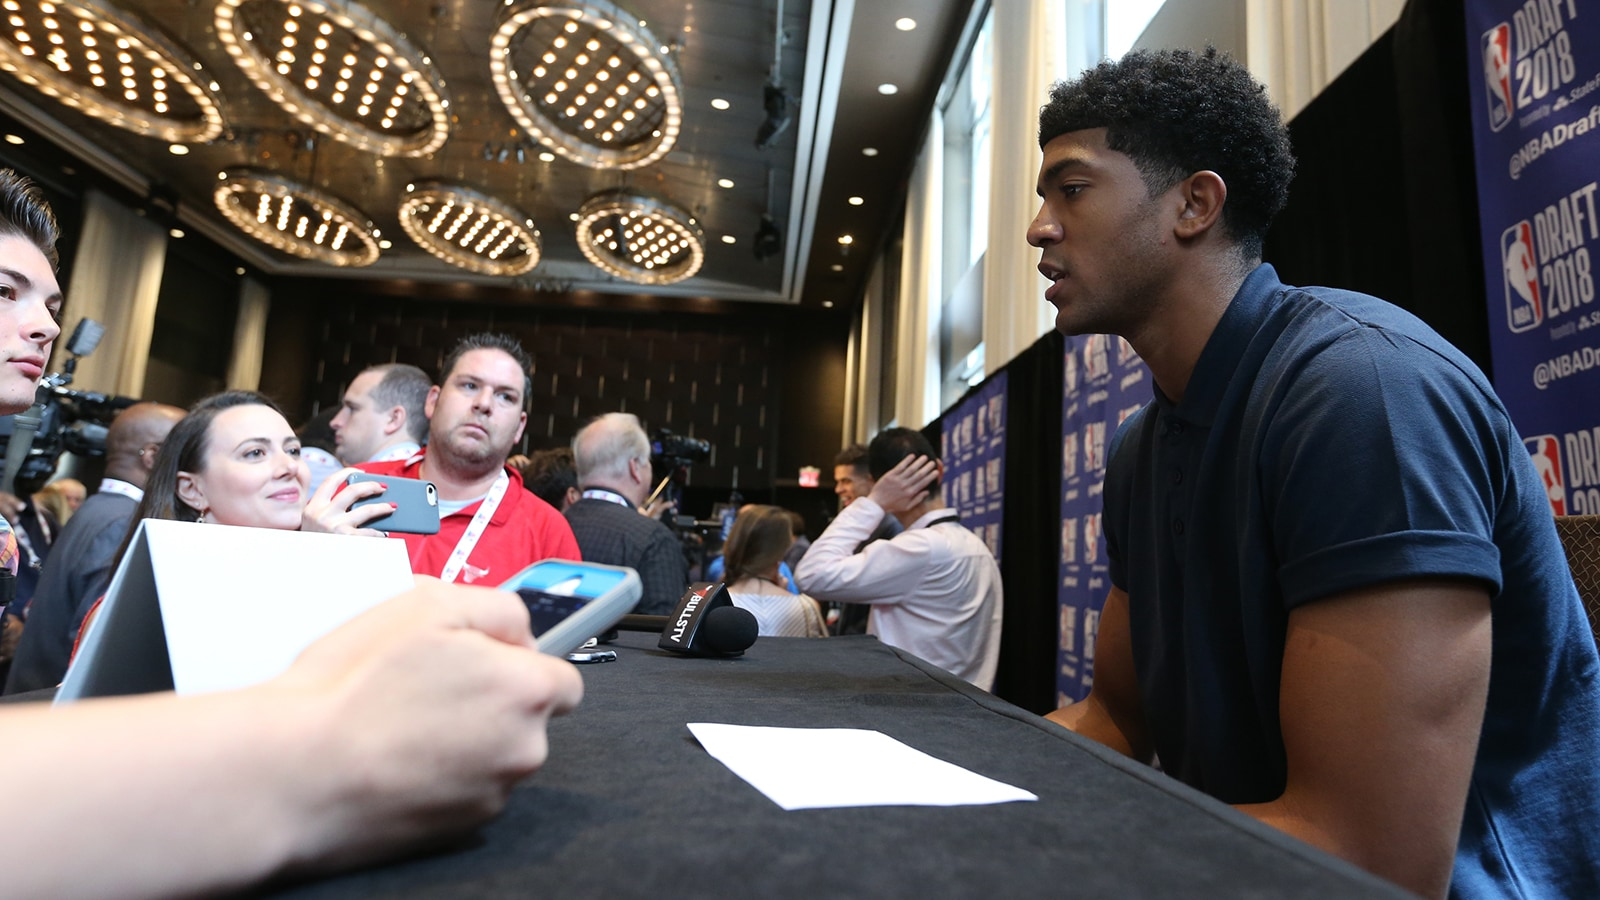 Chandler Hutchison ahead of the 2018 NBA Draft